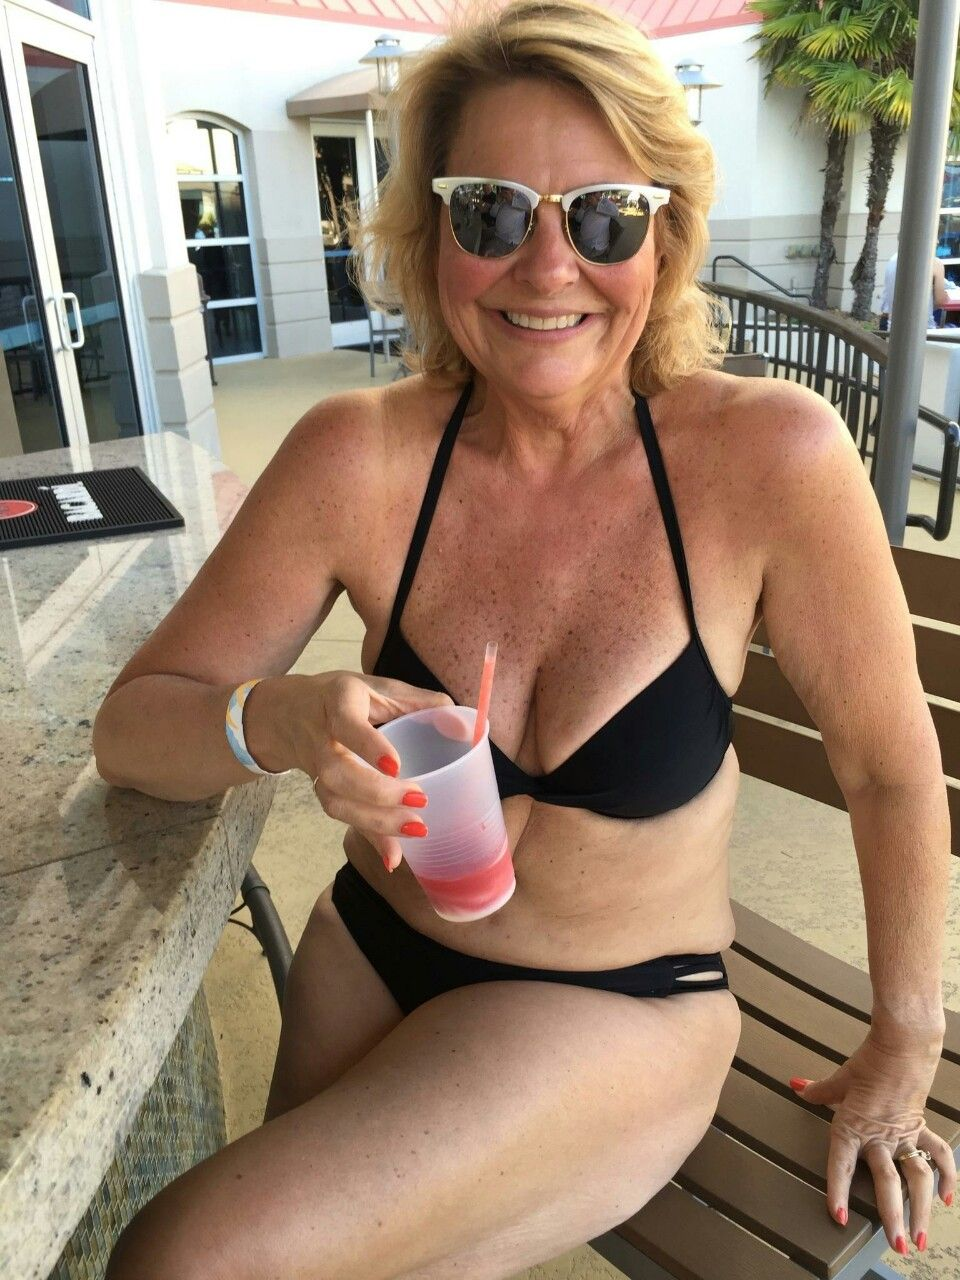 Seeking Agnostic 55 Kinky Woman To Man 60